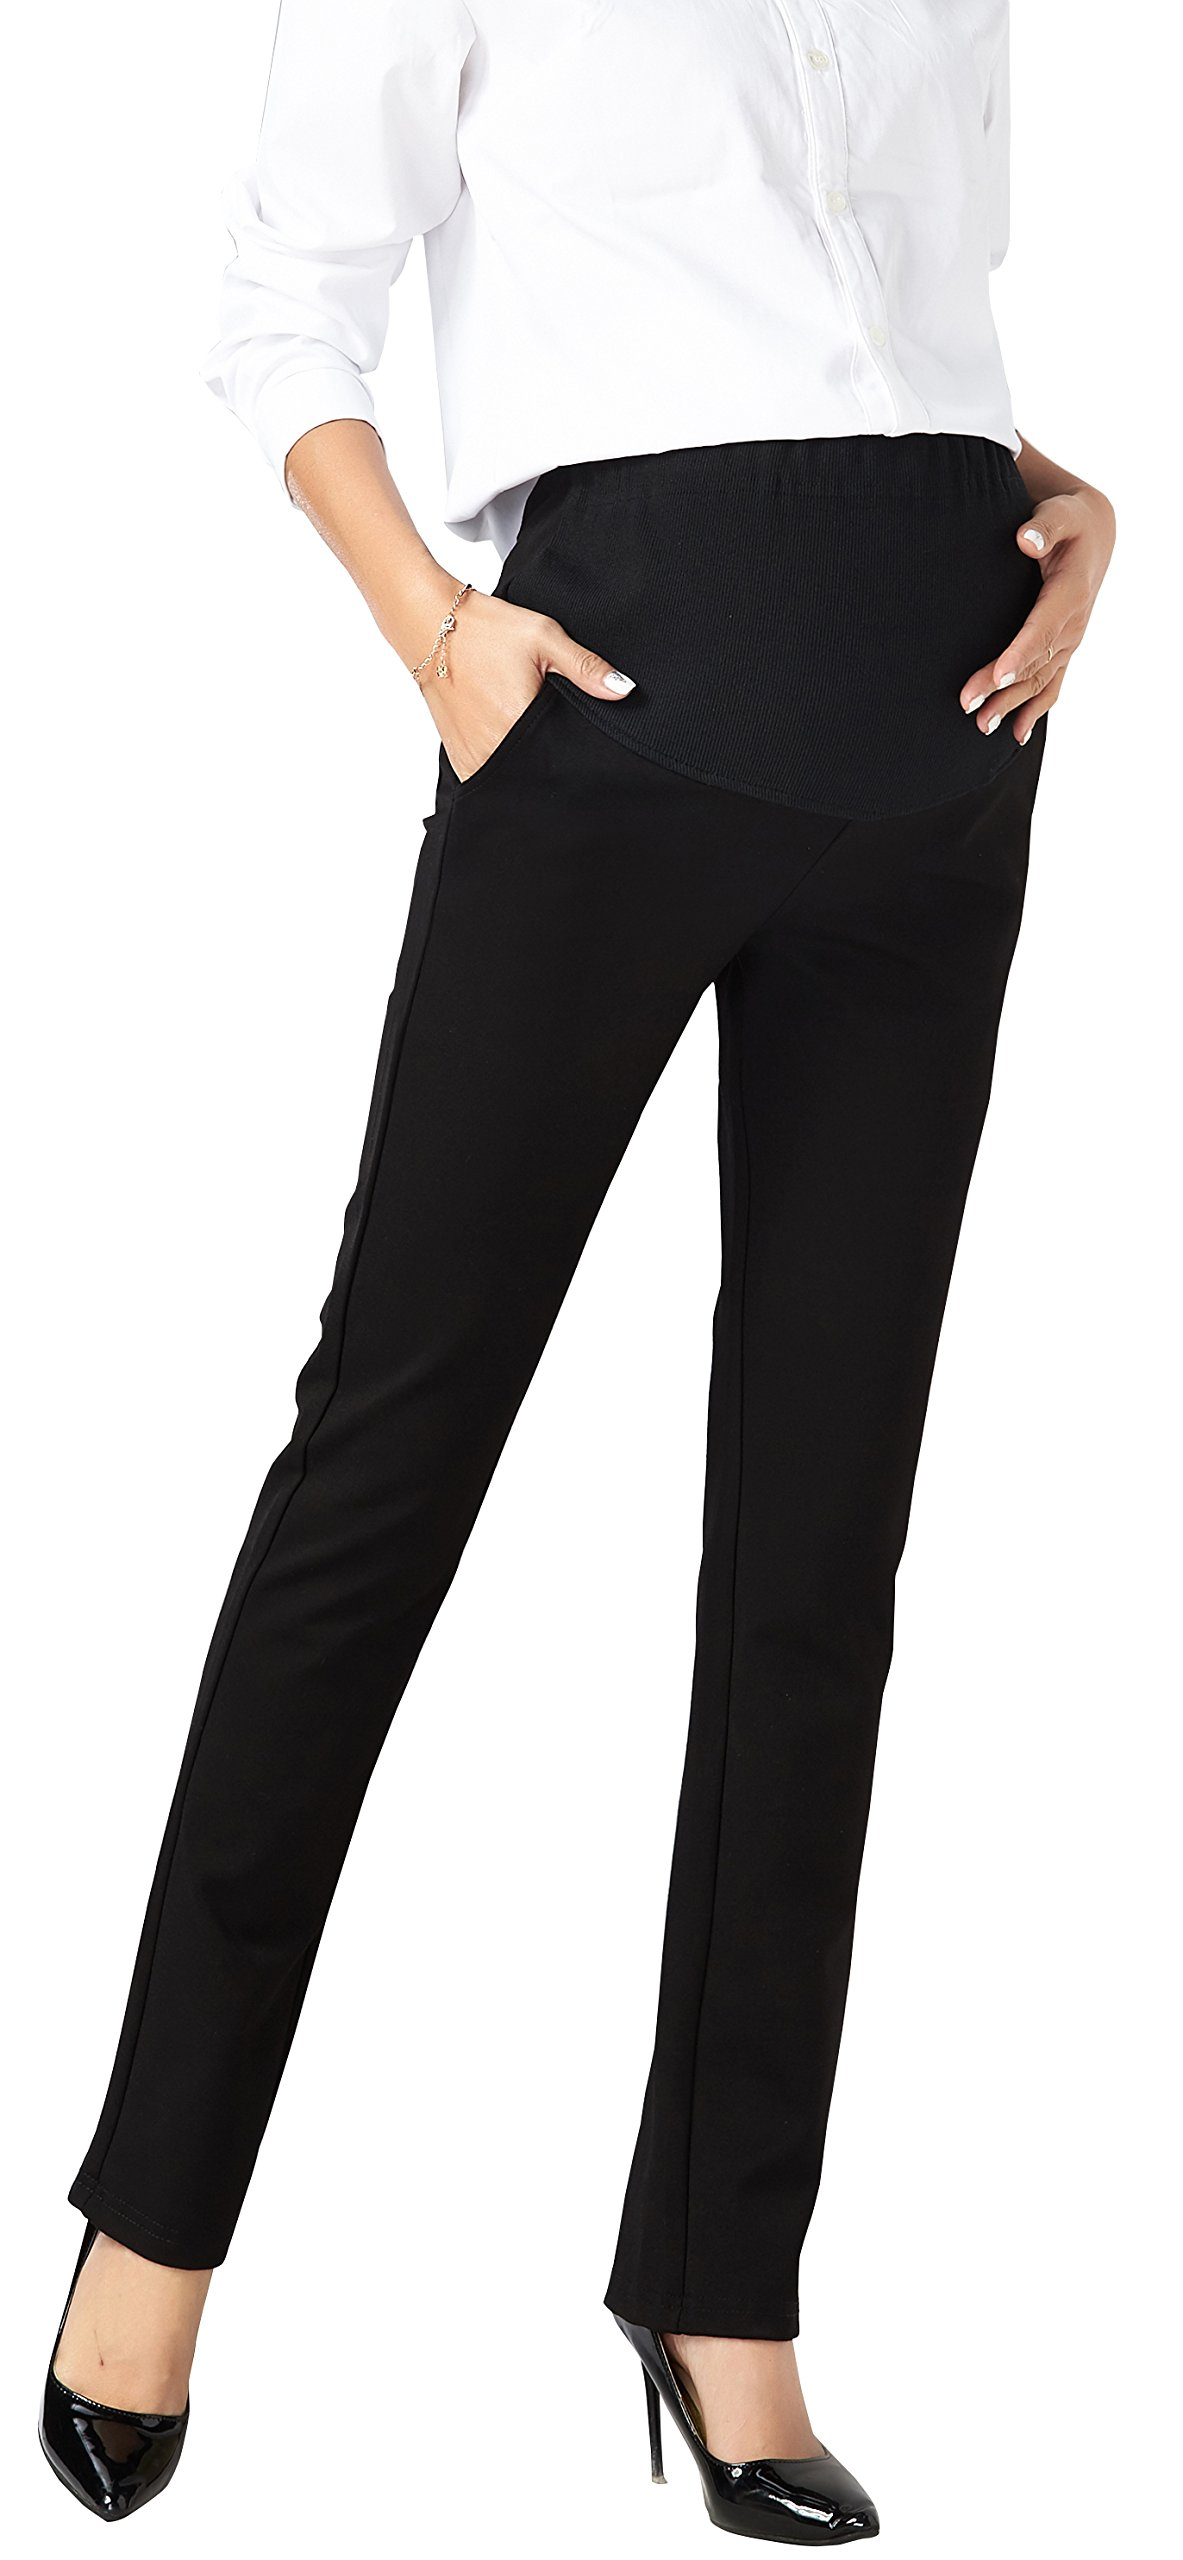 Foucome Womens Maternity Bootcut Stretch Career Dress Pants Work Office Over-bump Trousers Black